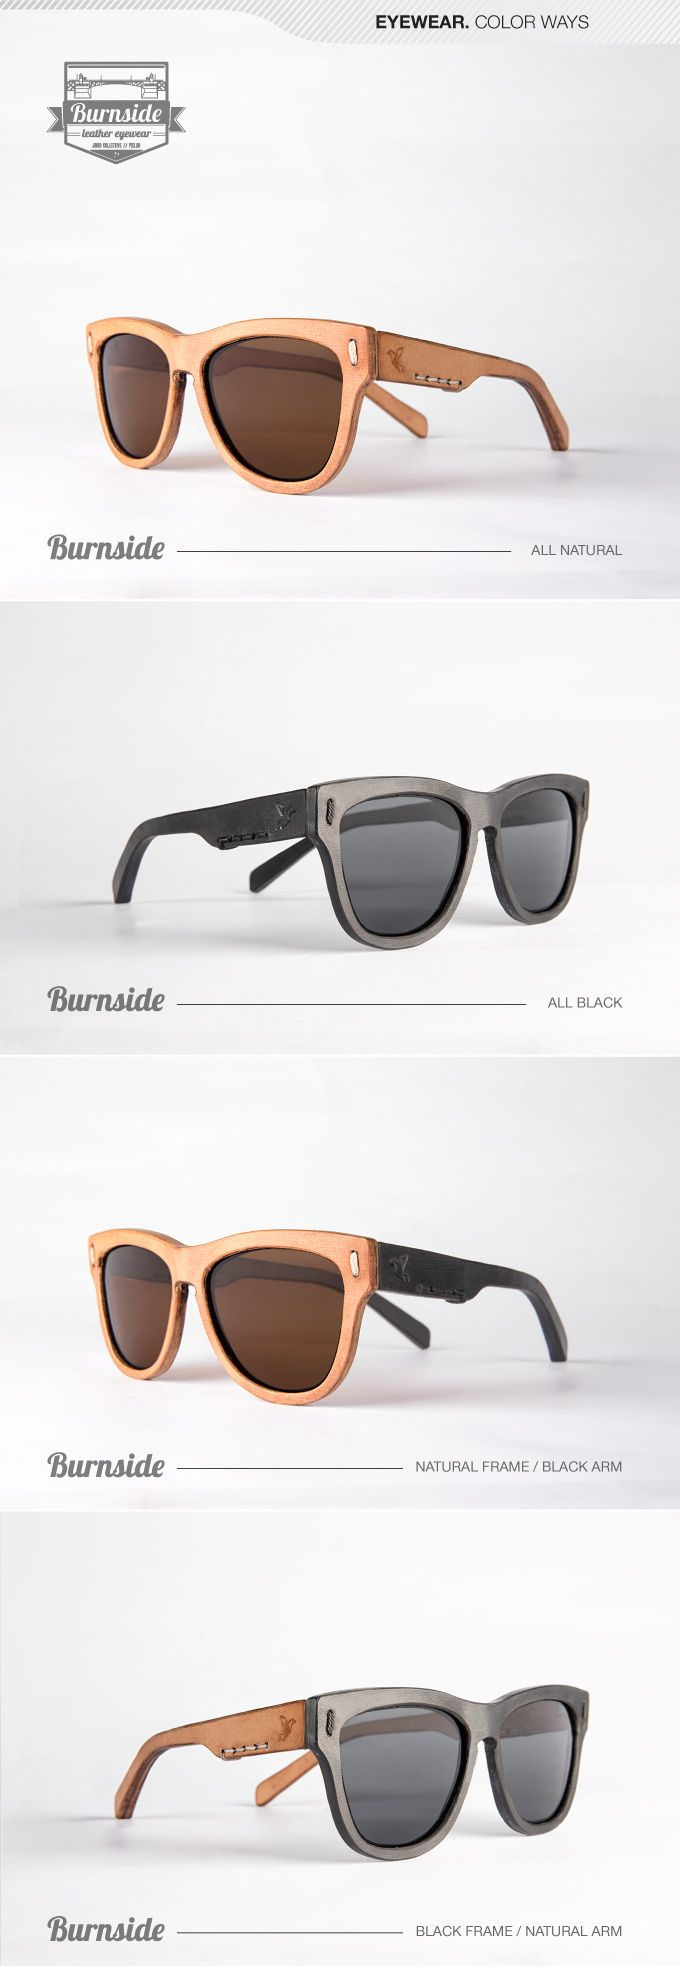 we are offering the very first all leather eyewear in 3 frames styles and 4 color